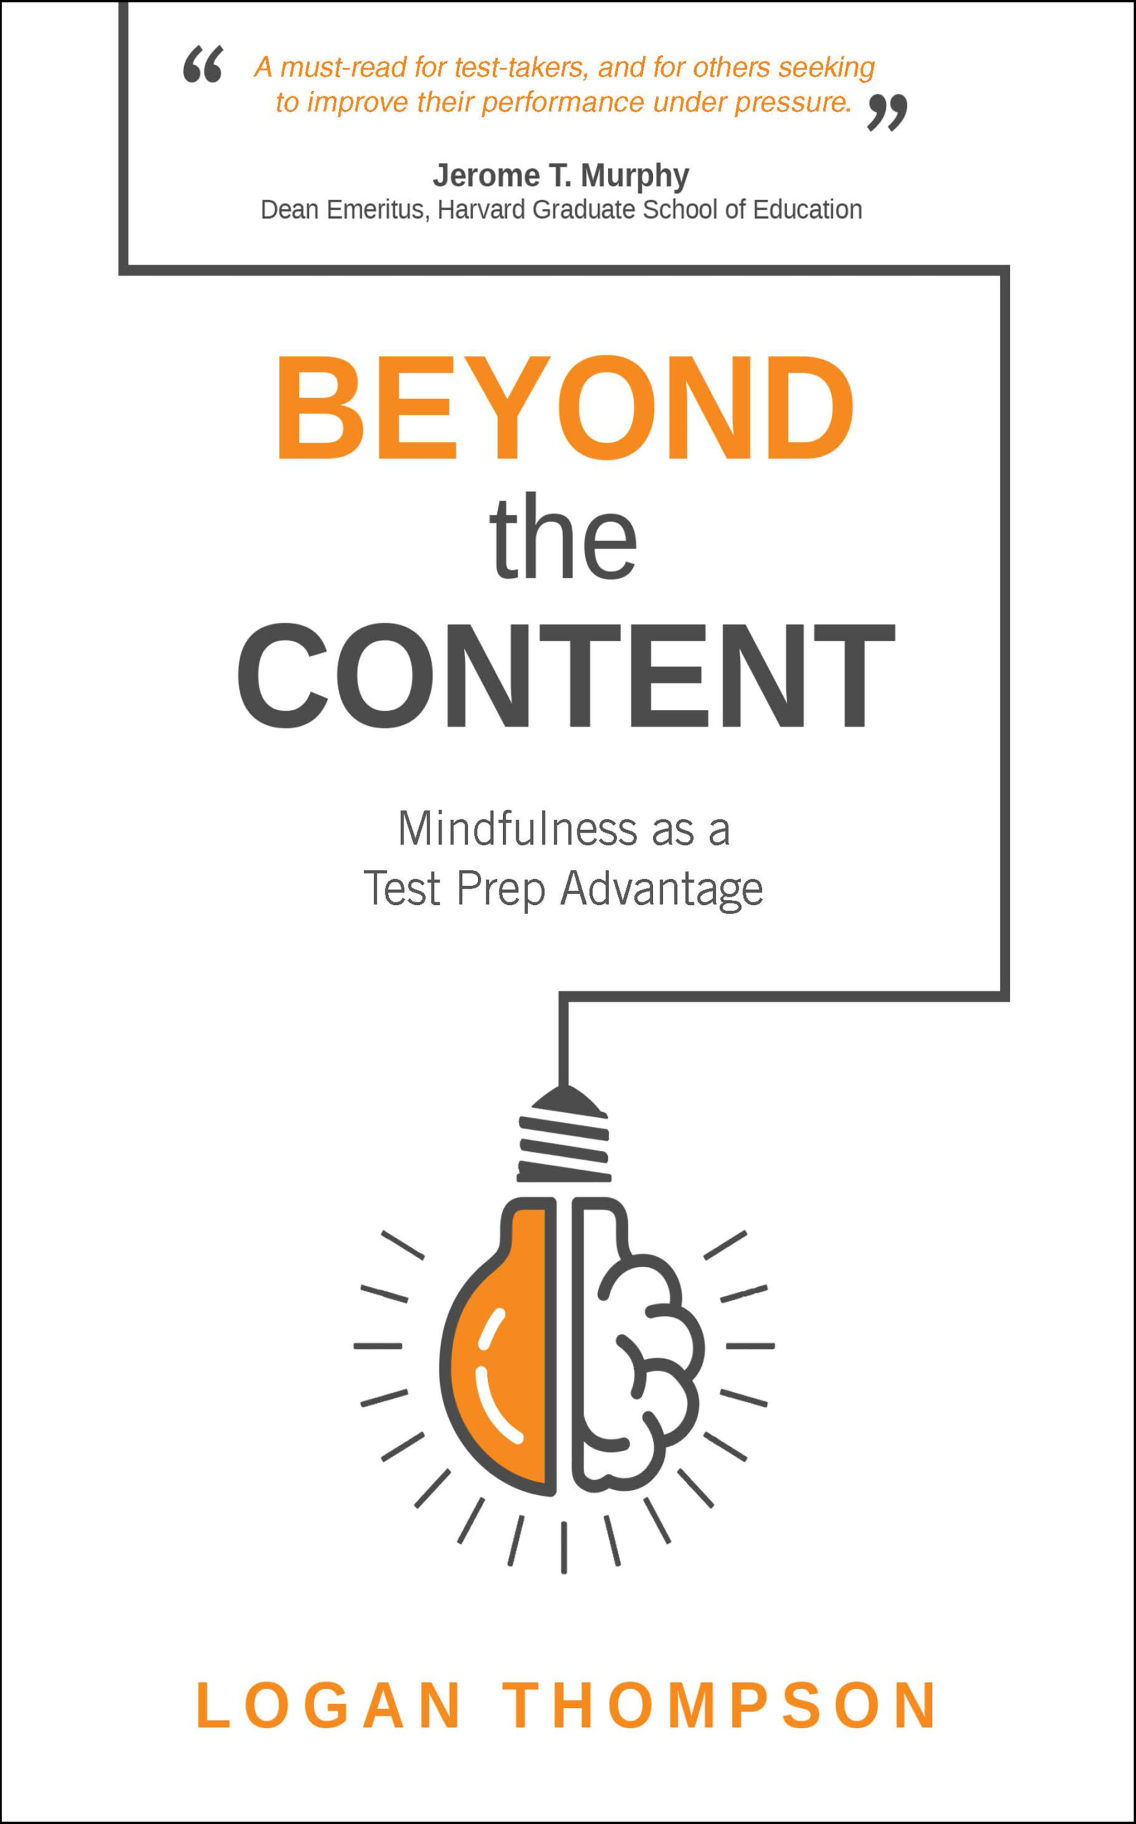 Beyond the Content Book Cover.jpg